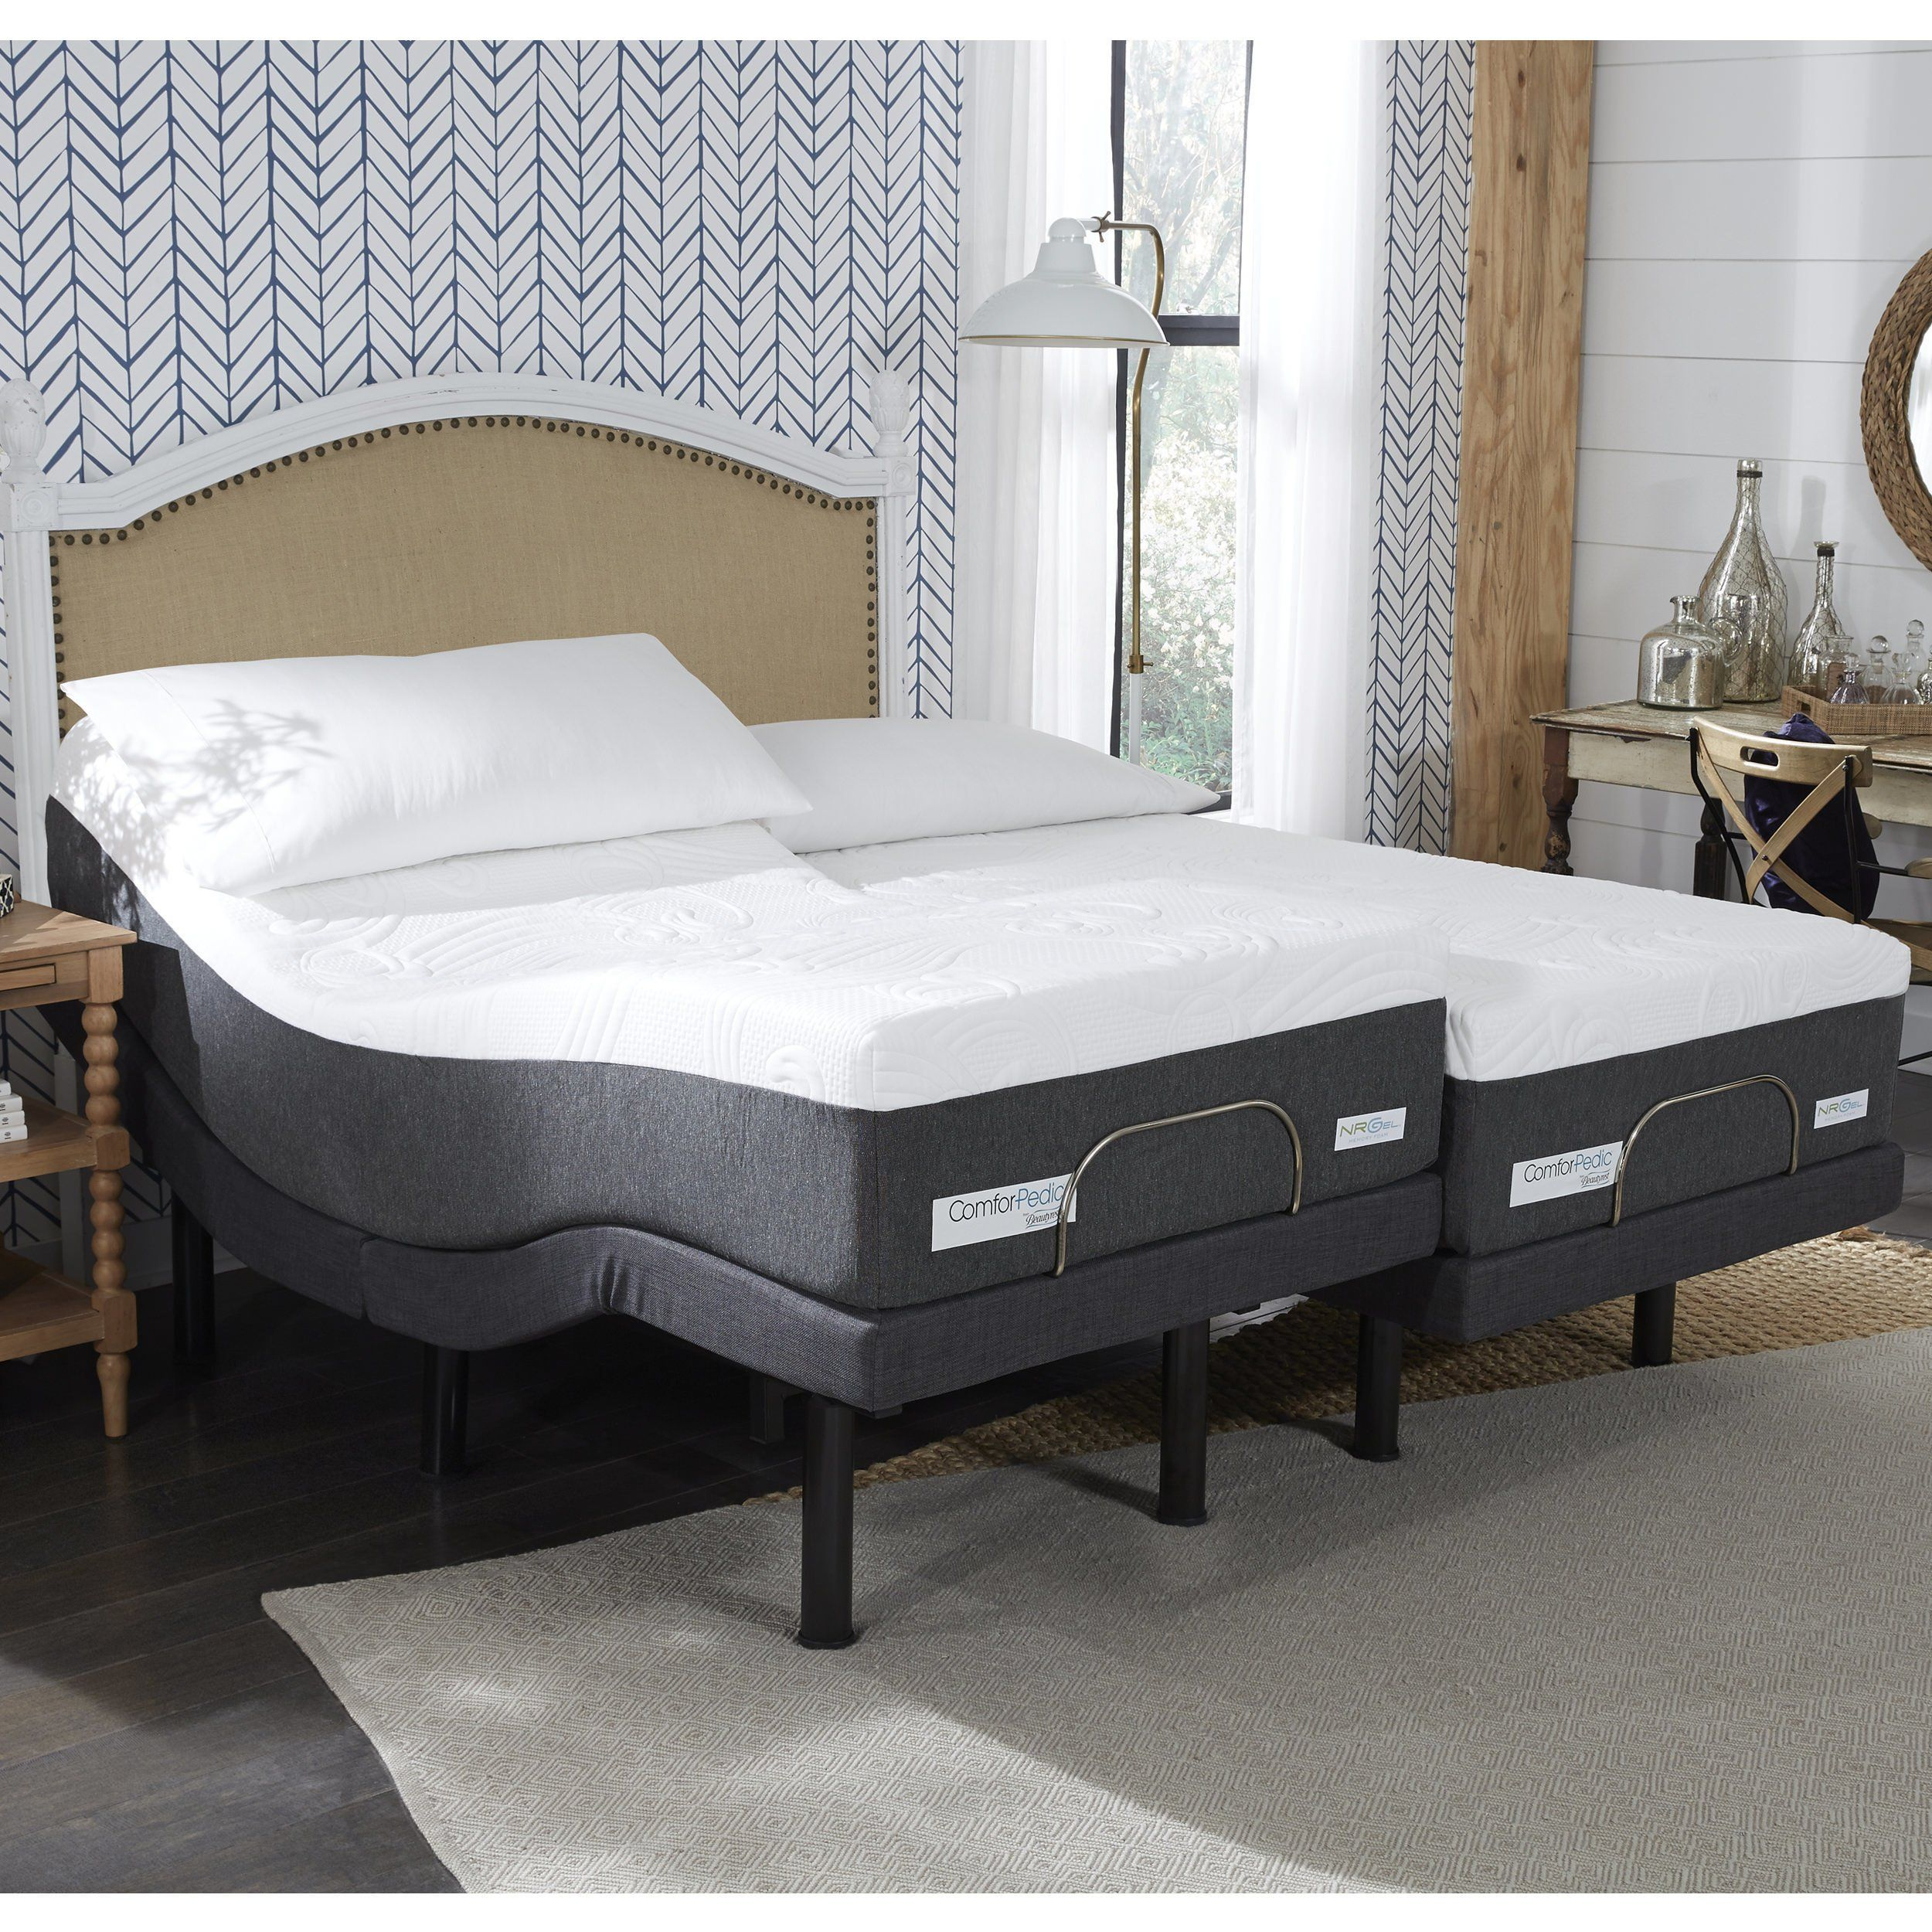 ComforPedic from BeautyRest 12inch NRGel Mattress and